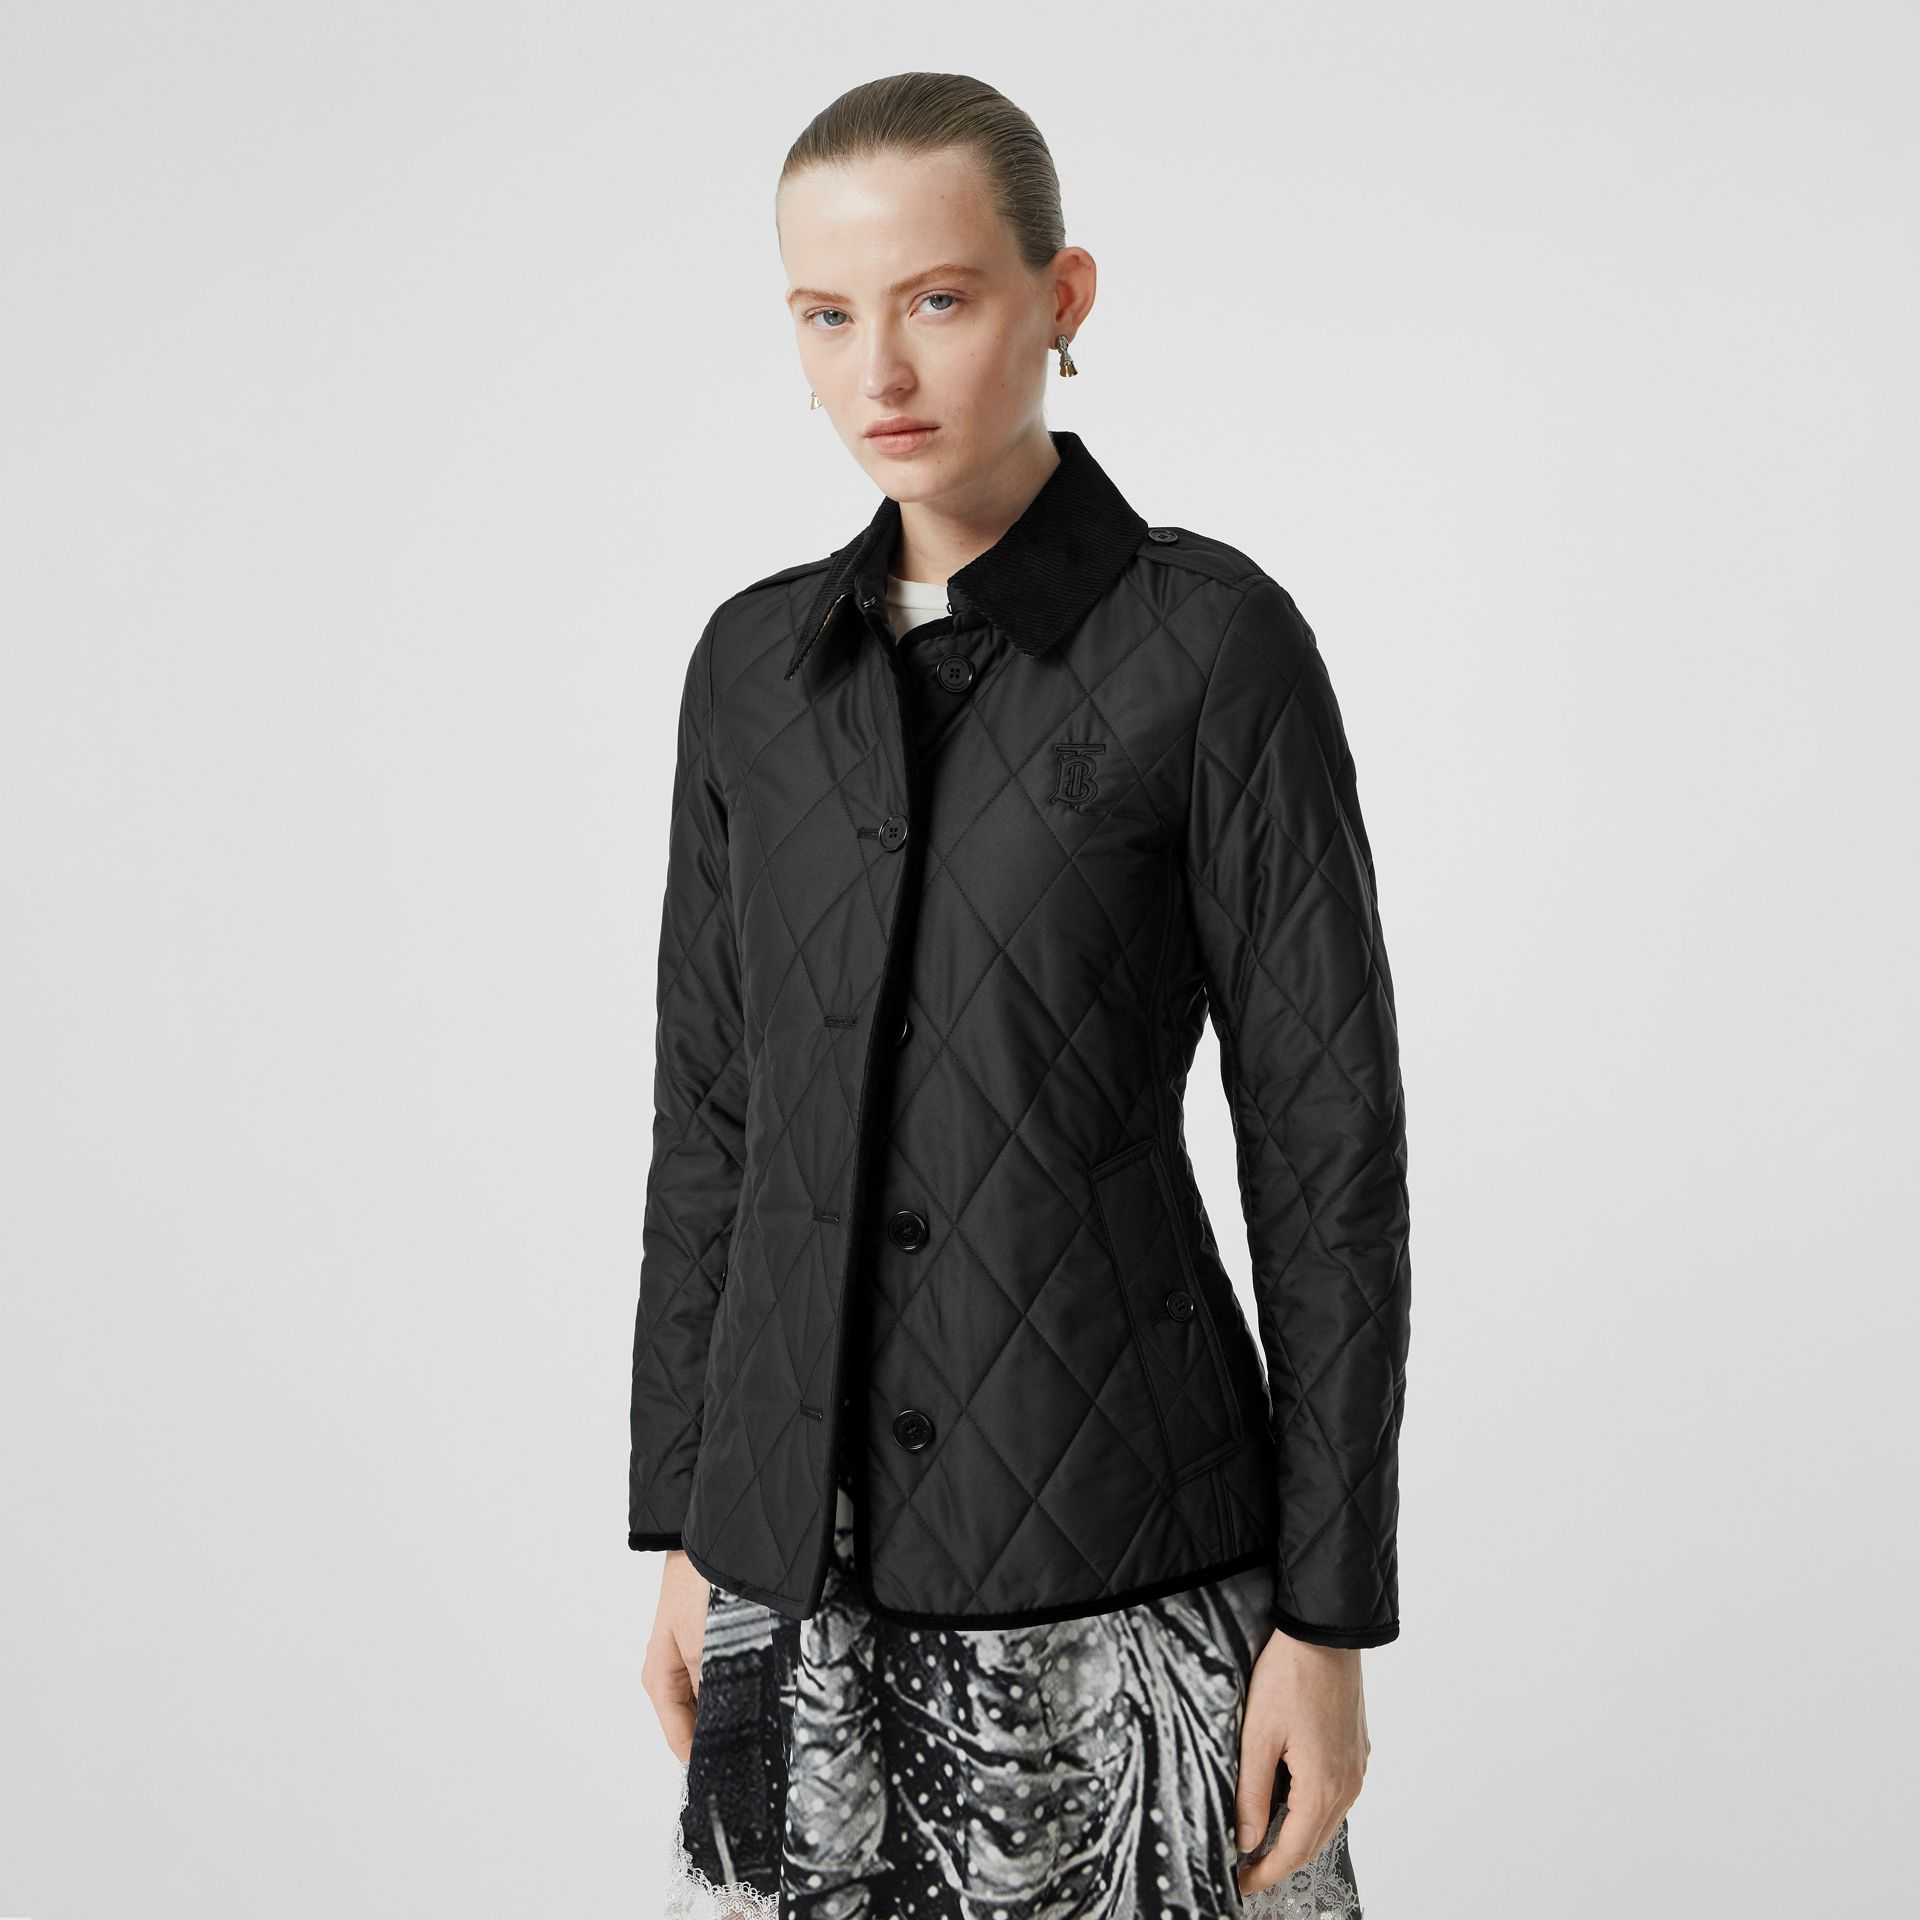 Monogram Motif Diamond Quilted Jacket in Black - Women | Burberry - gallery image 6